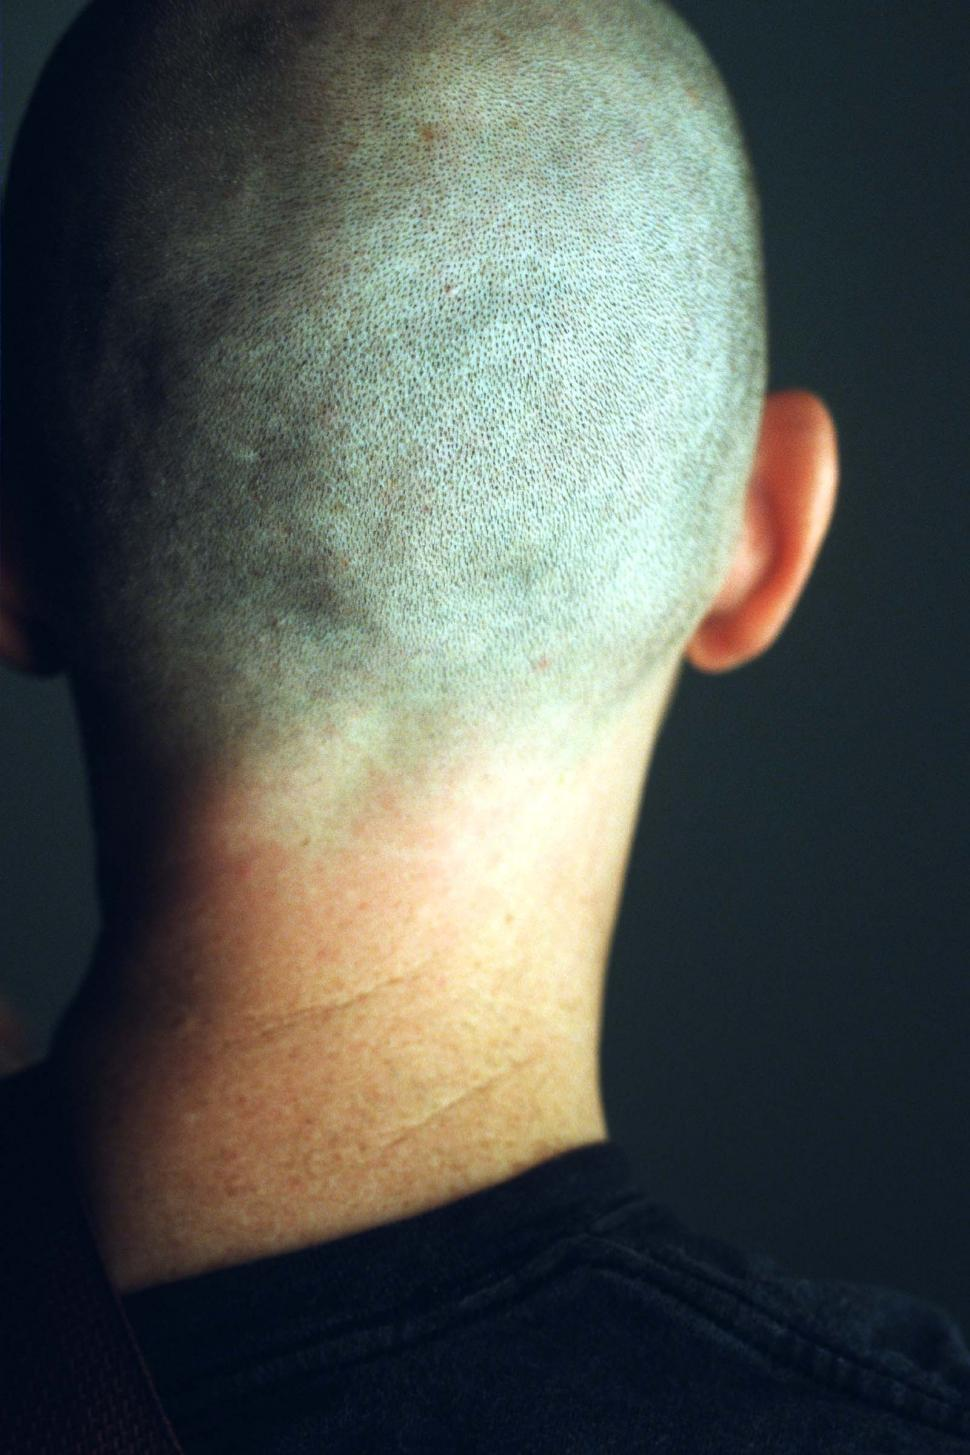 Download Free Stock HD Photo of Back of a man's head - nearly shaved head Online